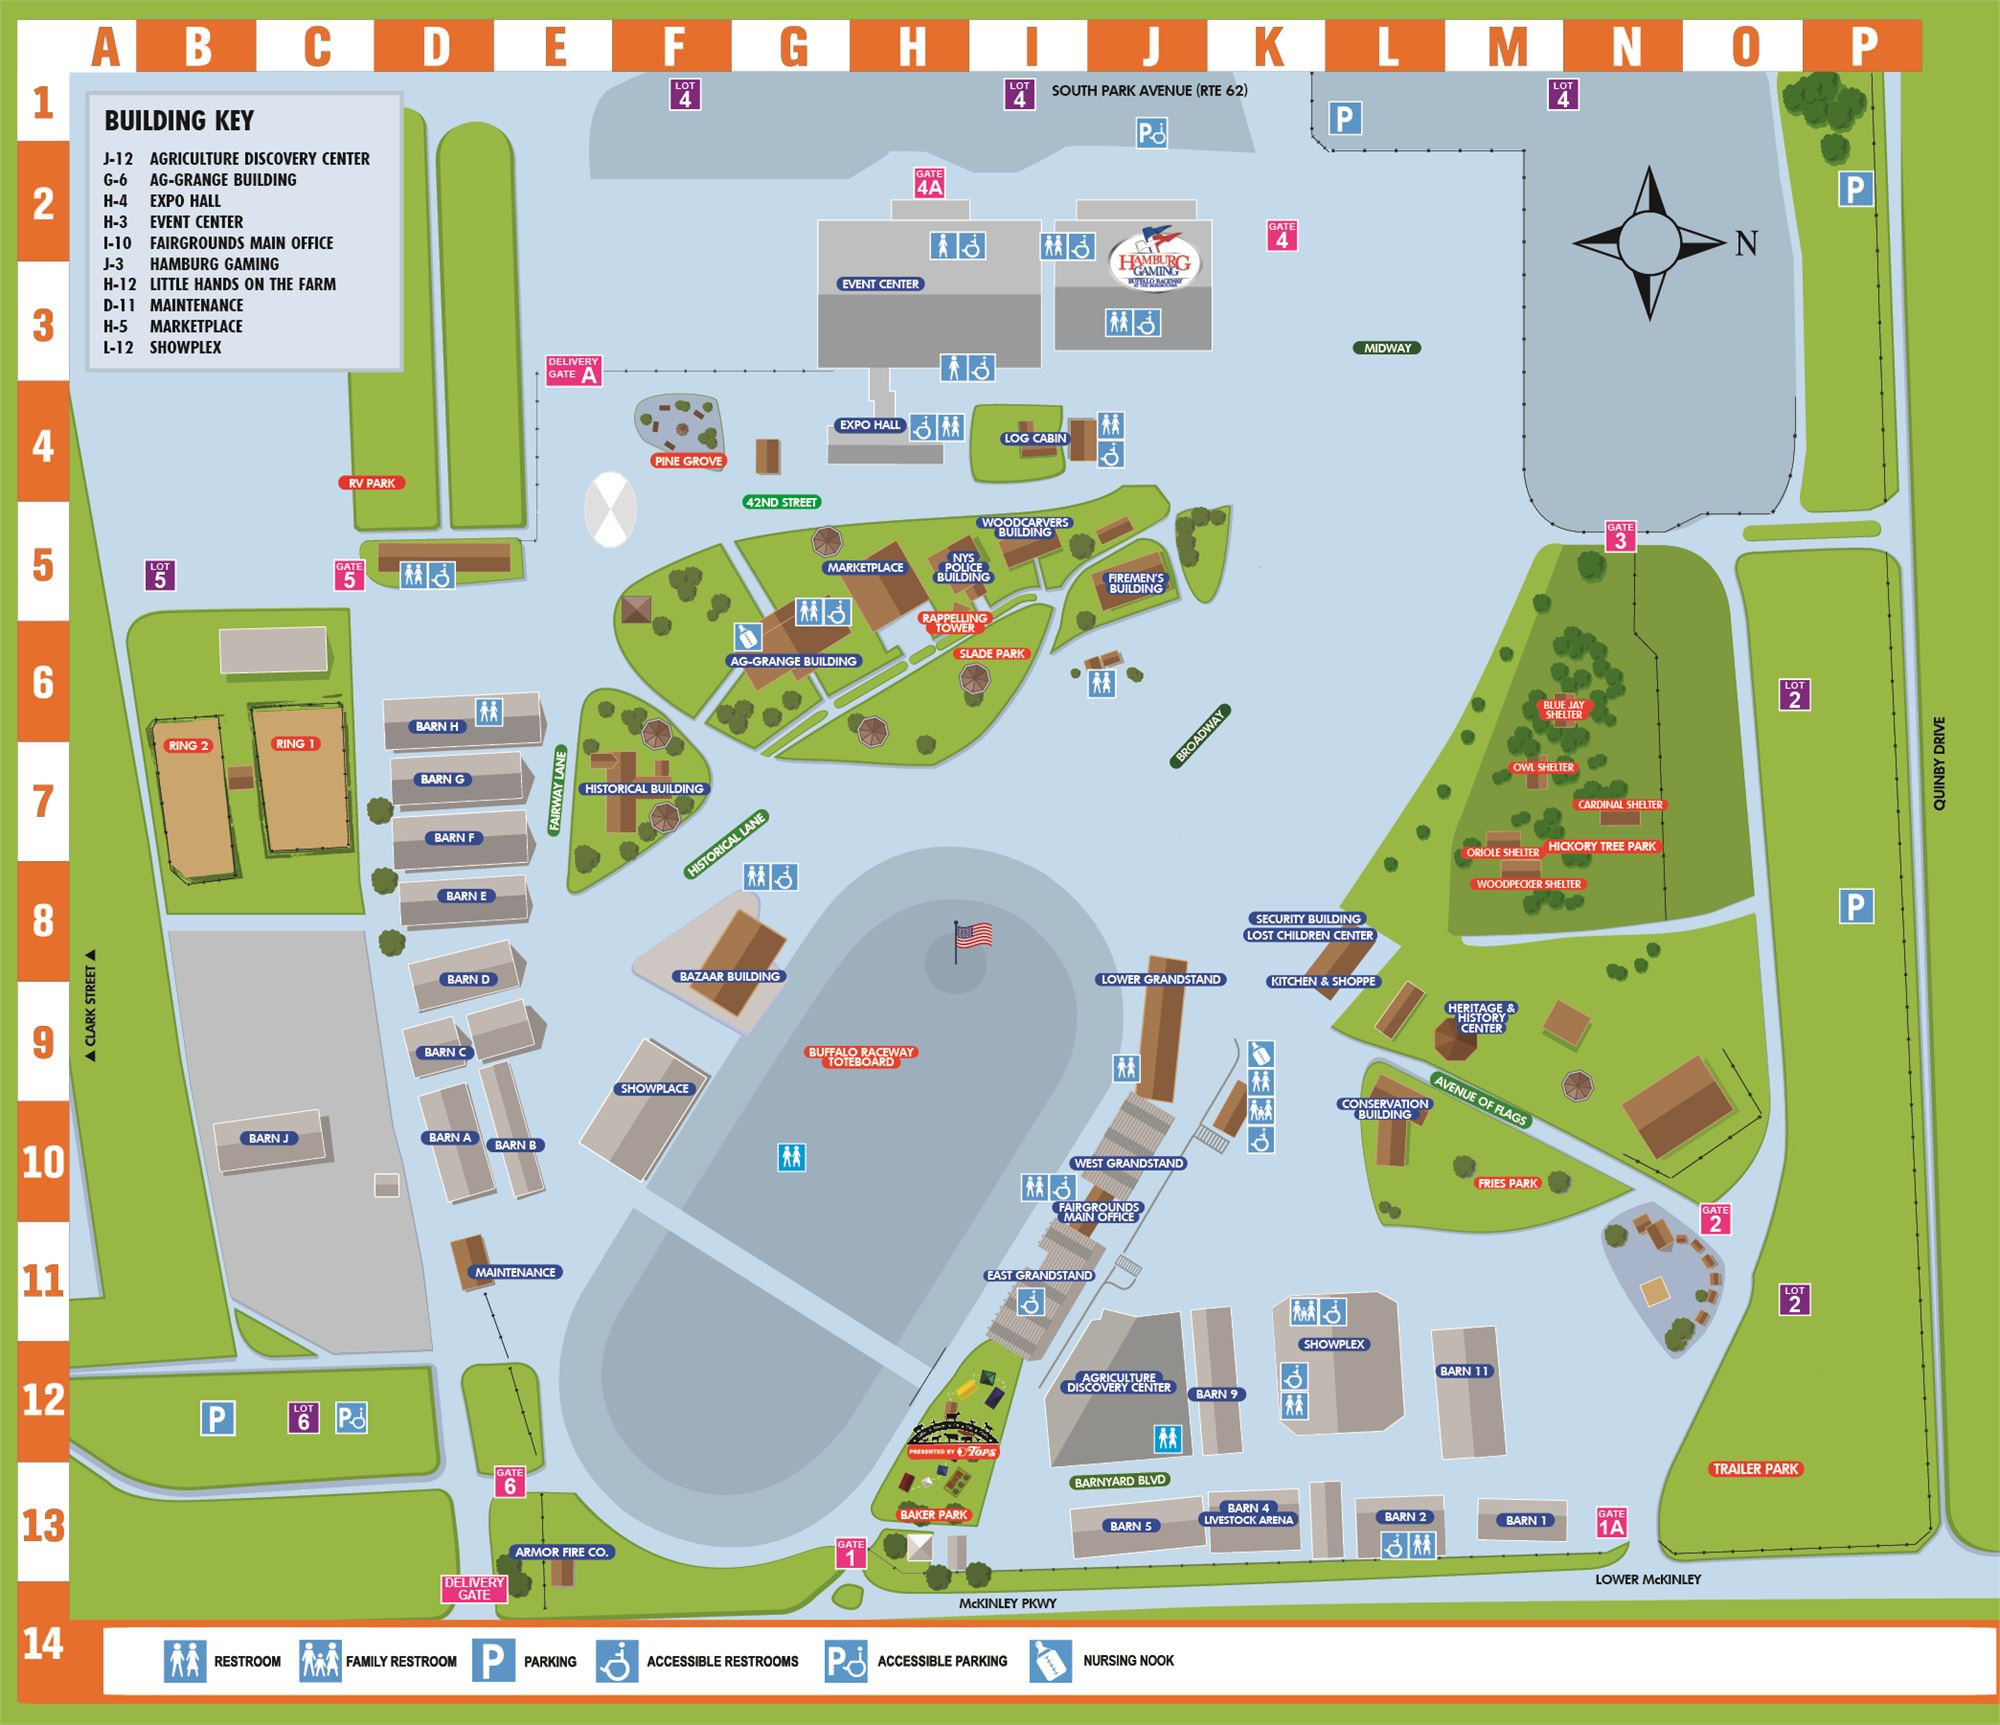 Map of Grounds C O Map on